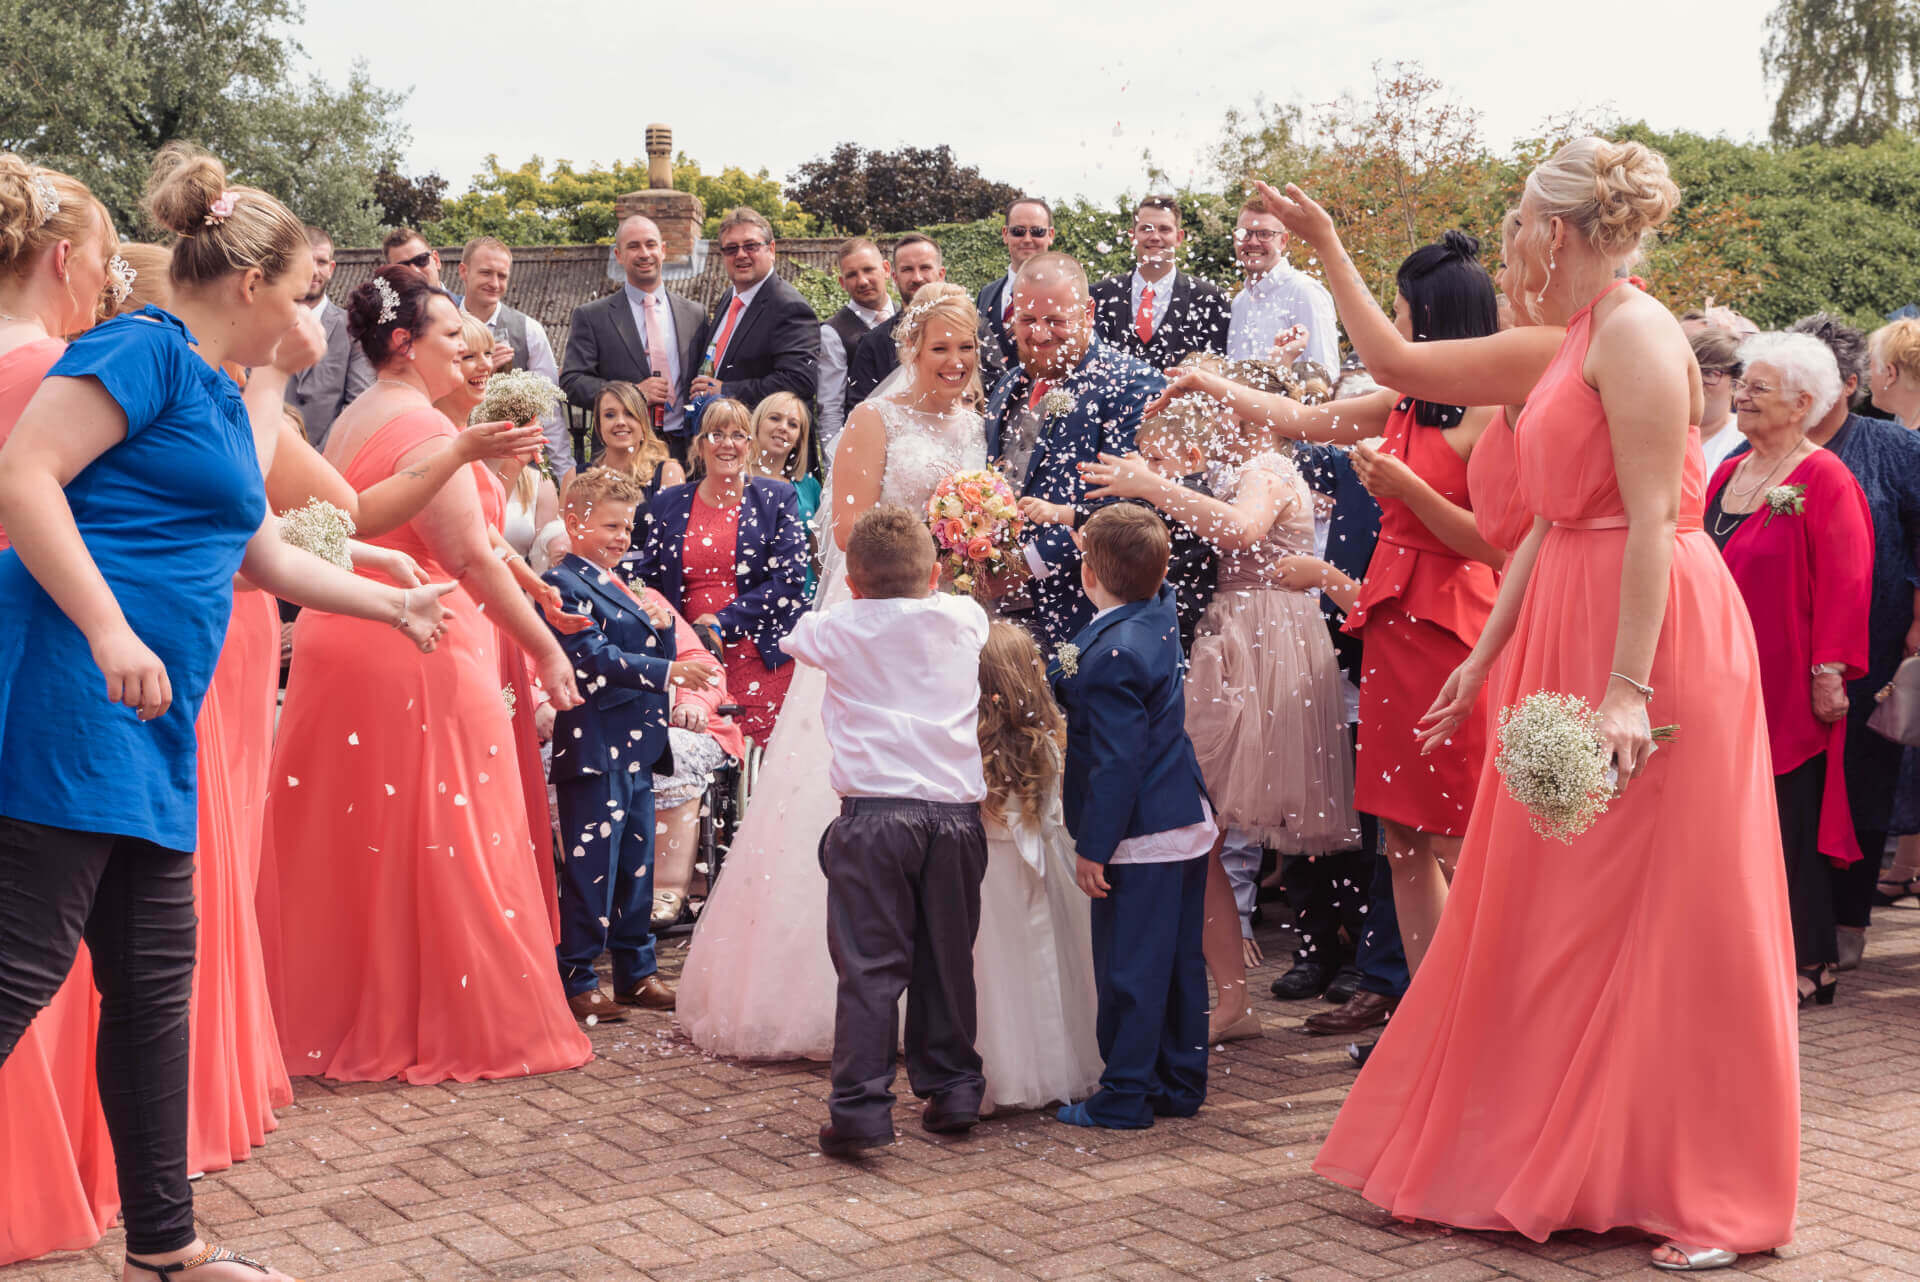 Confetti wedding photograph at Whaplode Manor, Lincolnshire by Slice of Life Photography